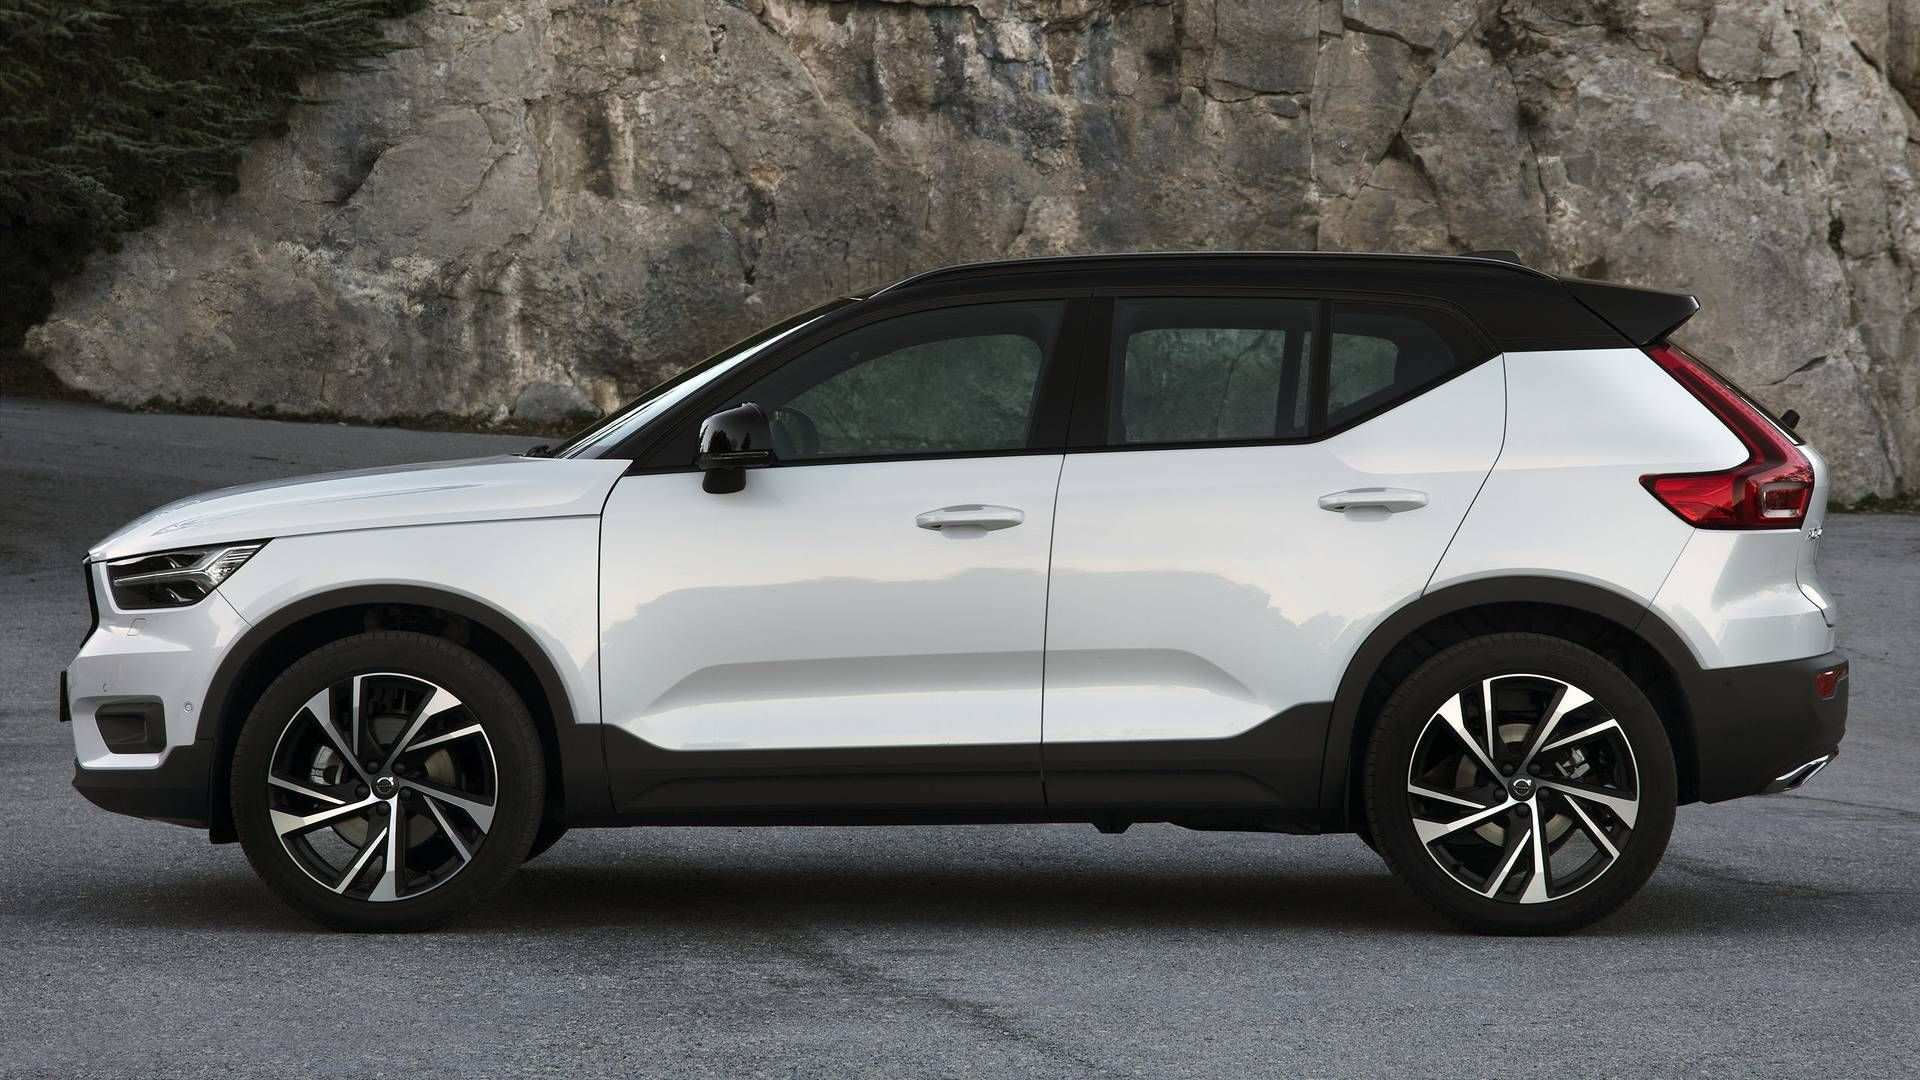 69 Great 2019 Volvo Xc40 Owners Manual Release with 2019 Volvo Xc40 Owners Manual